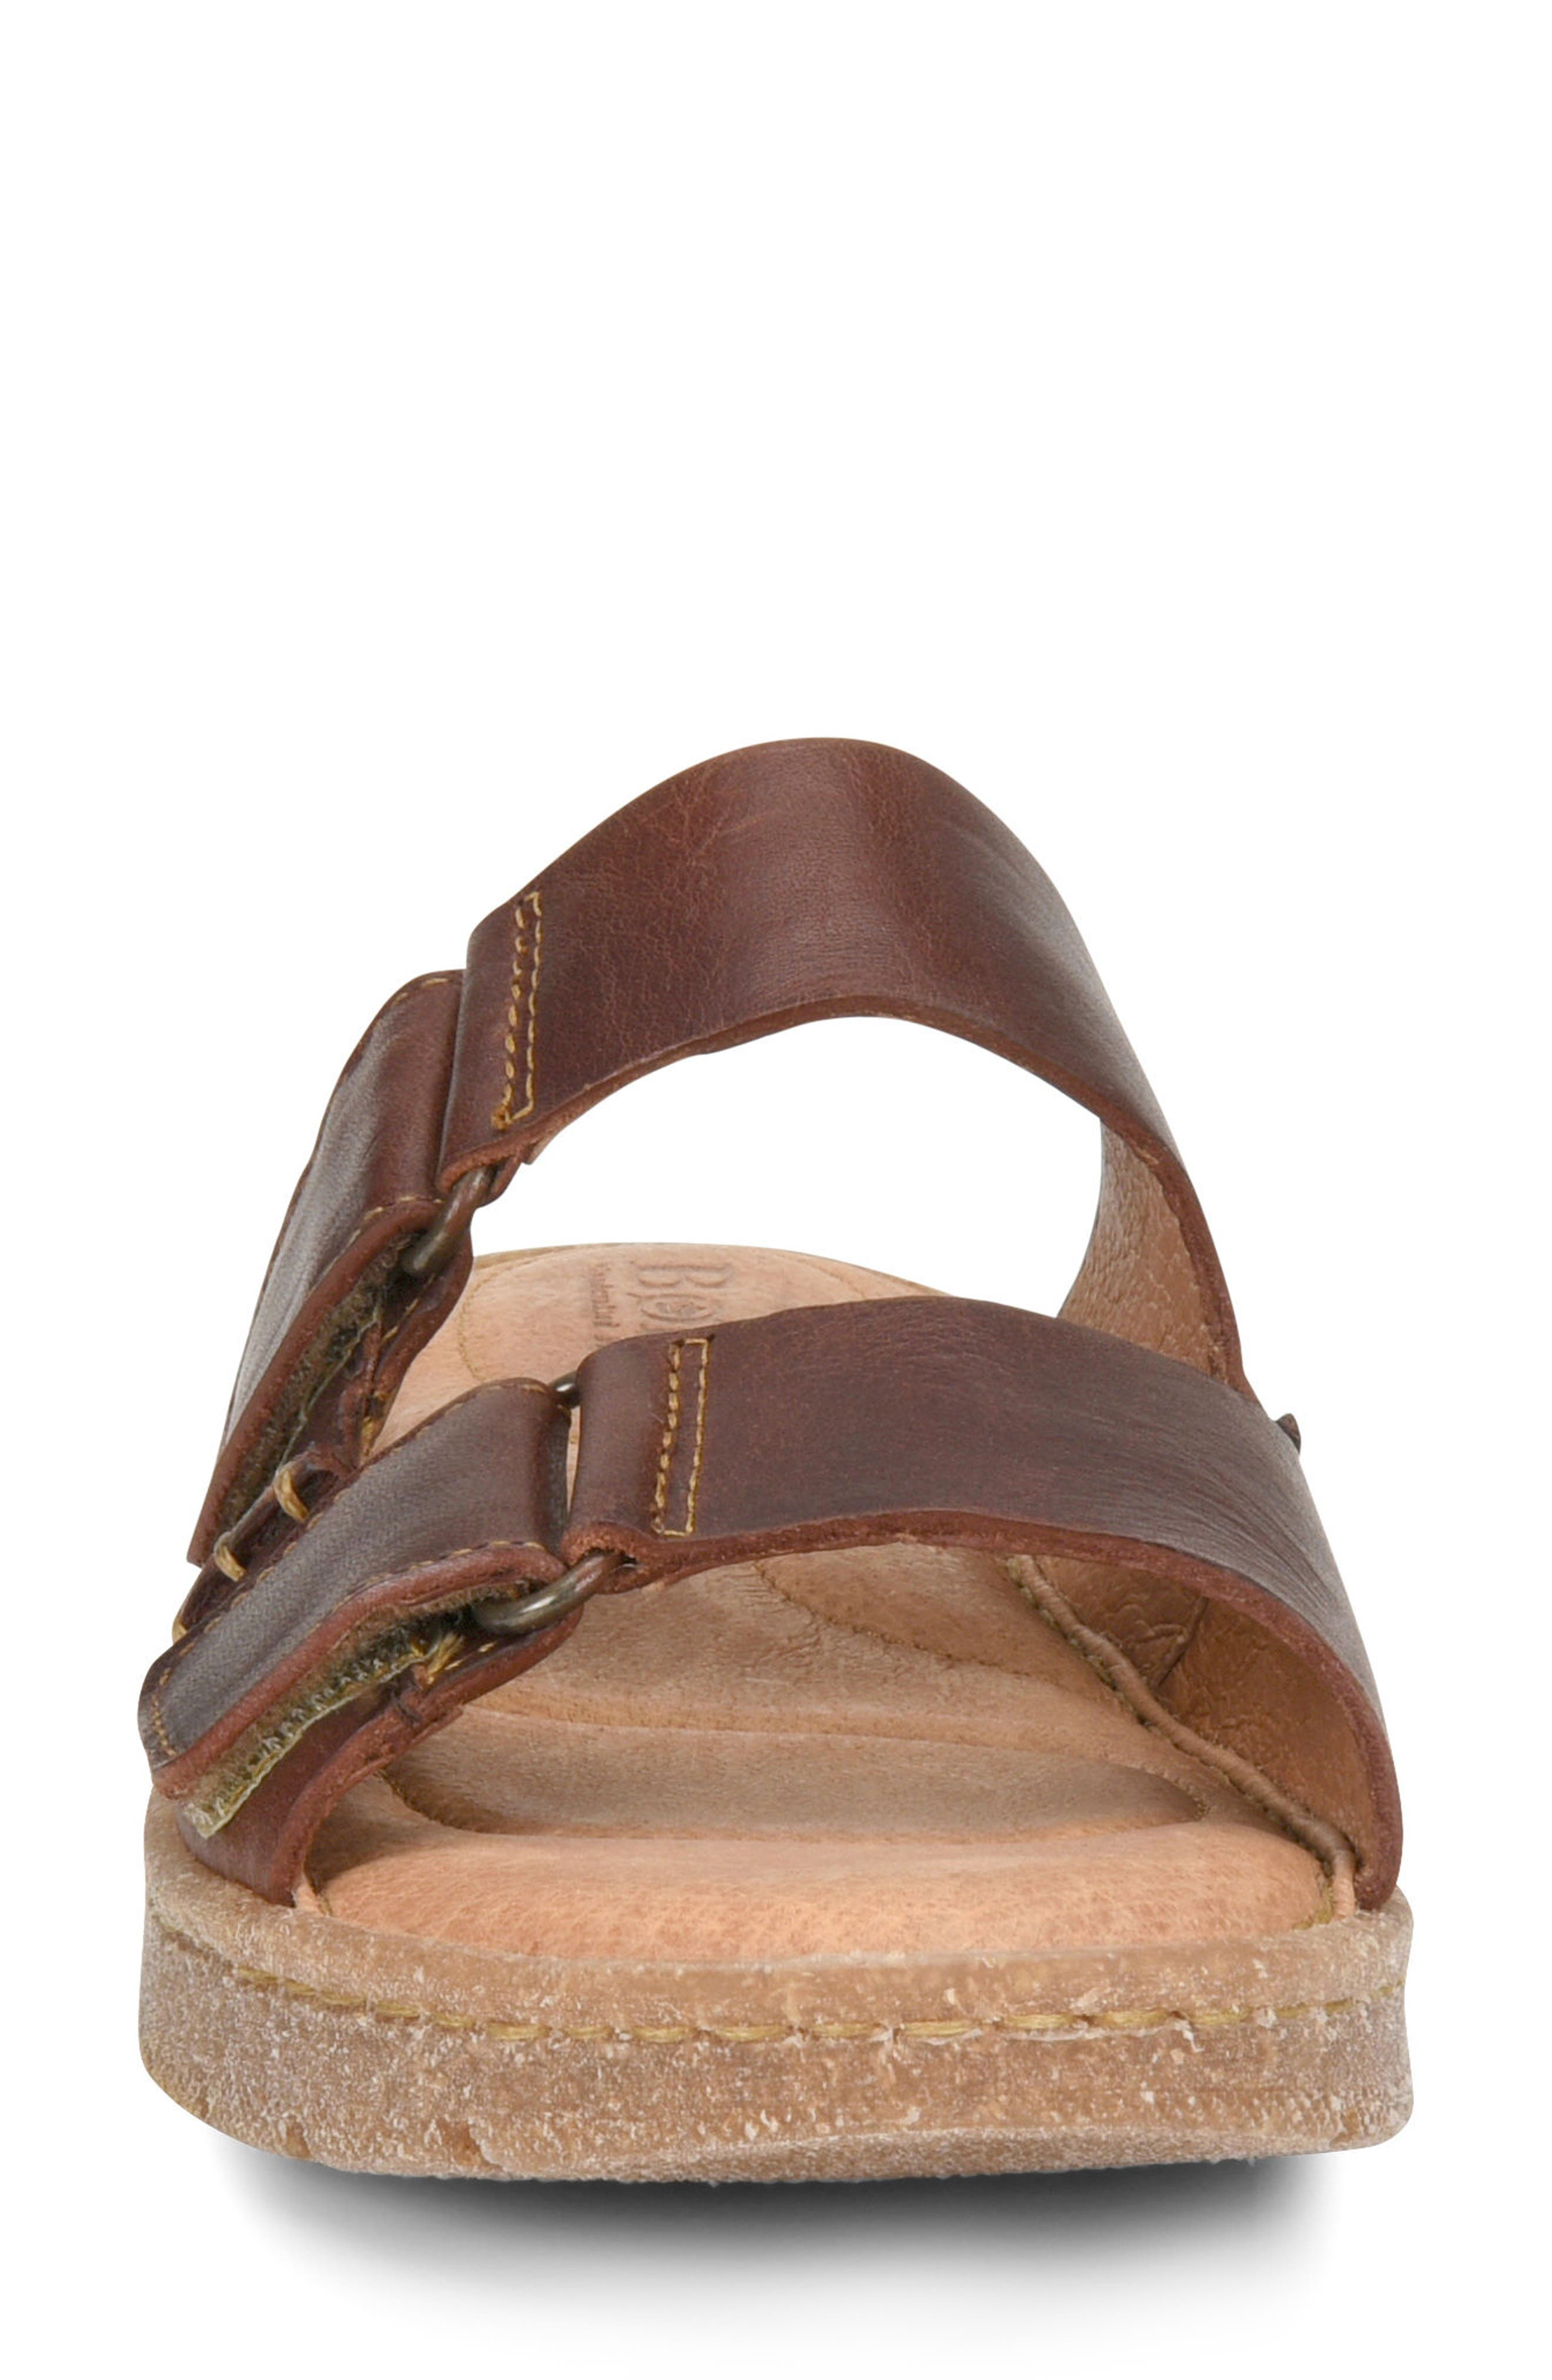 BØRN,                             Dominica Sandal,                             Alternate thumbnail 4, color,                             RUST LEATHER